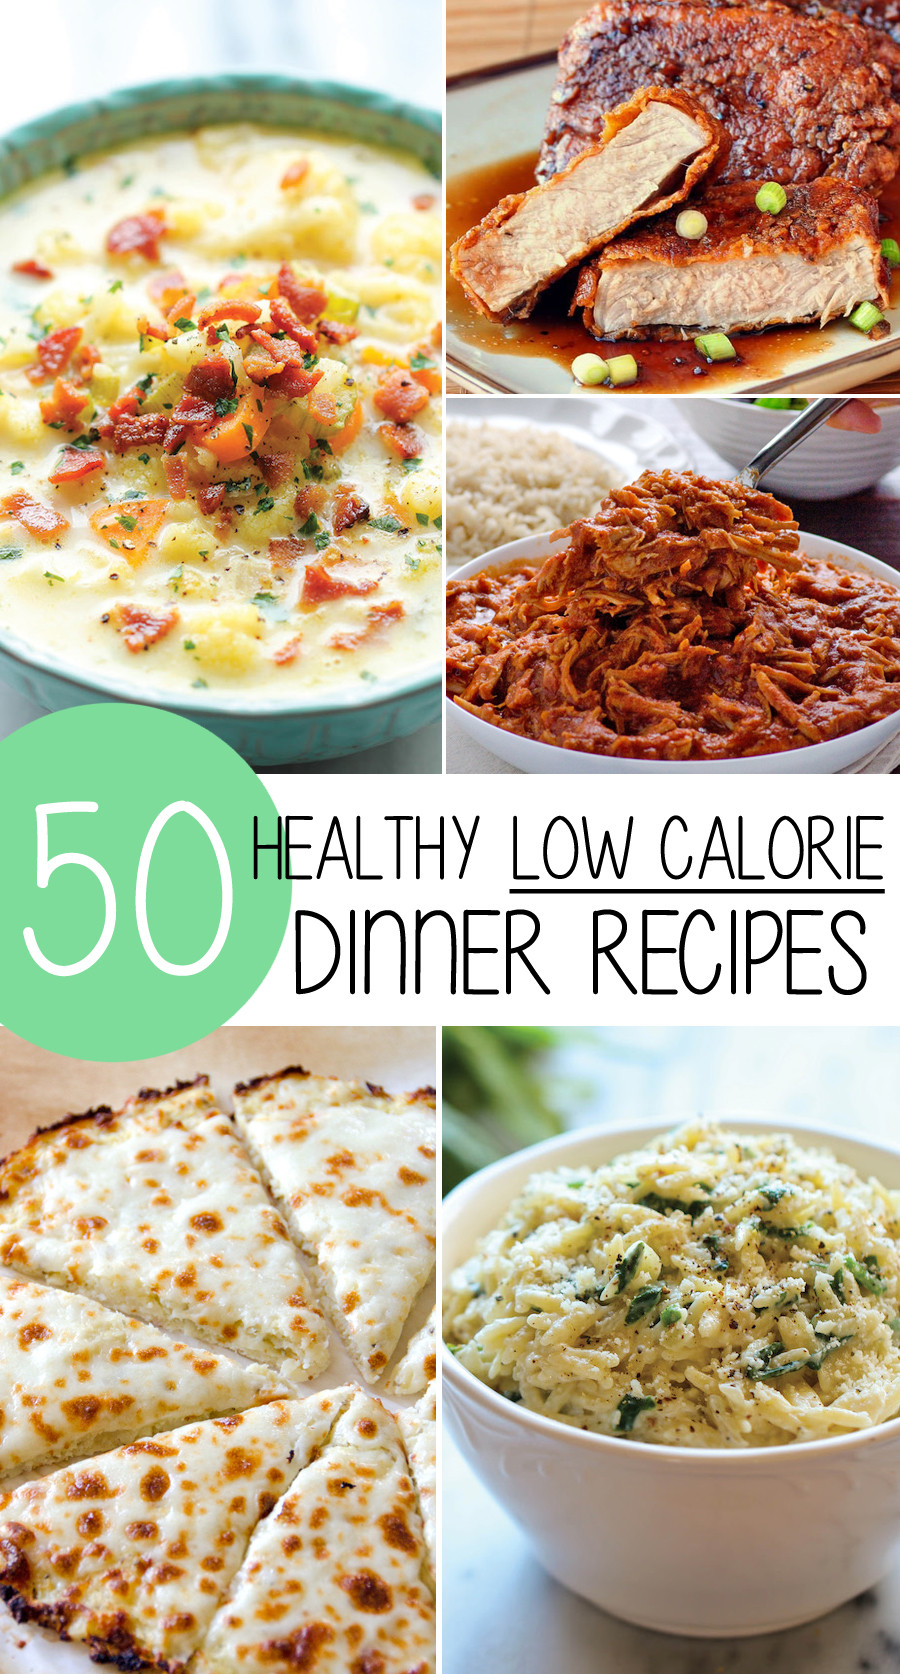 Quick Low Calorie Dinners  50 Healthy Low Calorie Weight Loss Dinner Recipes